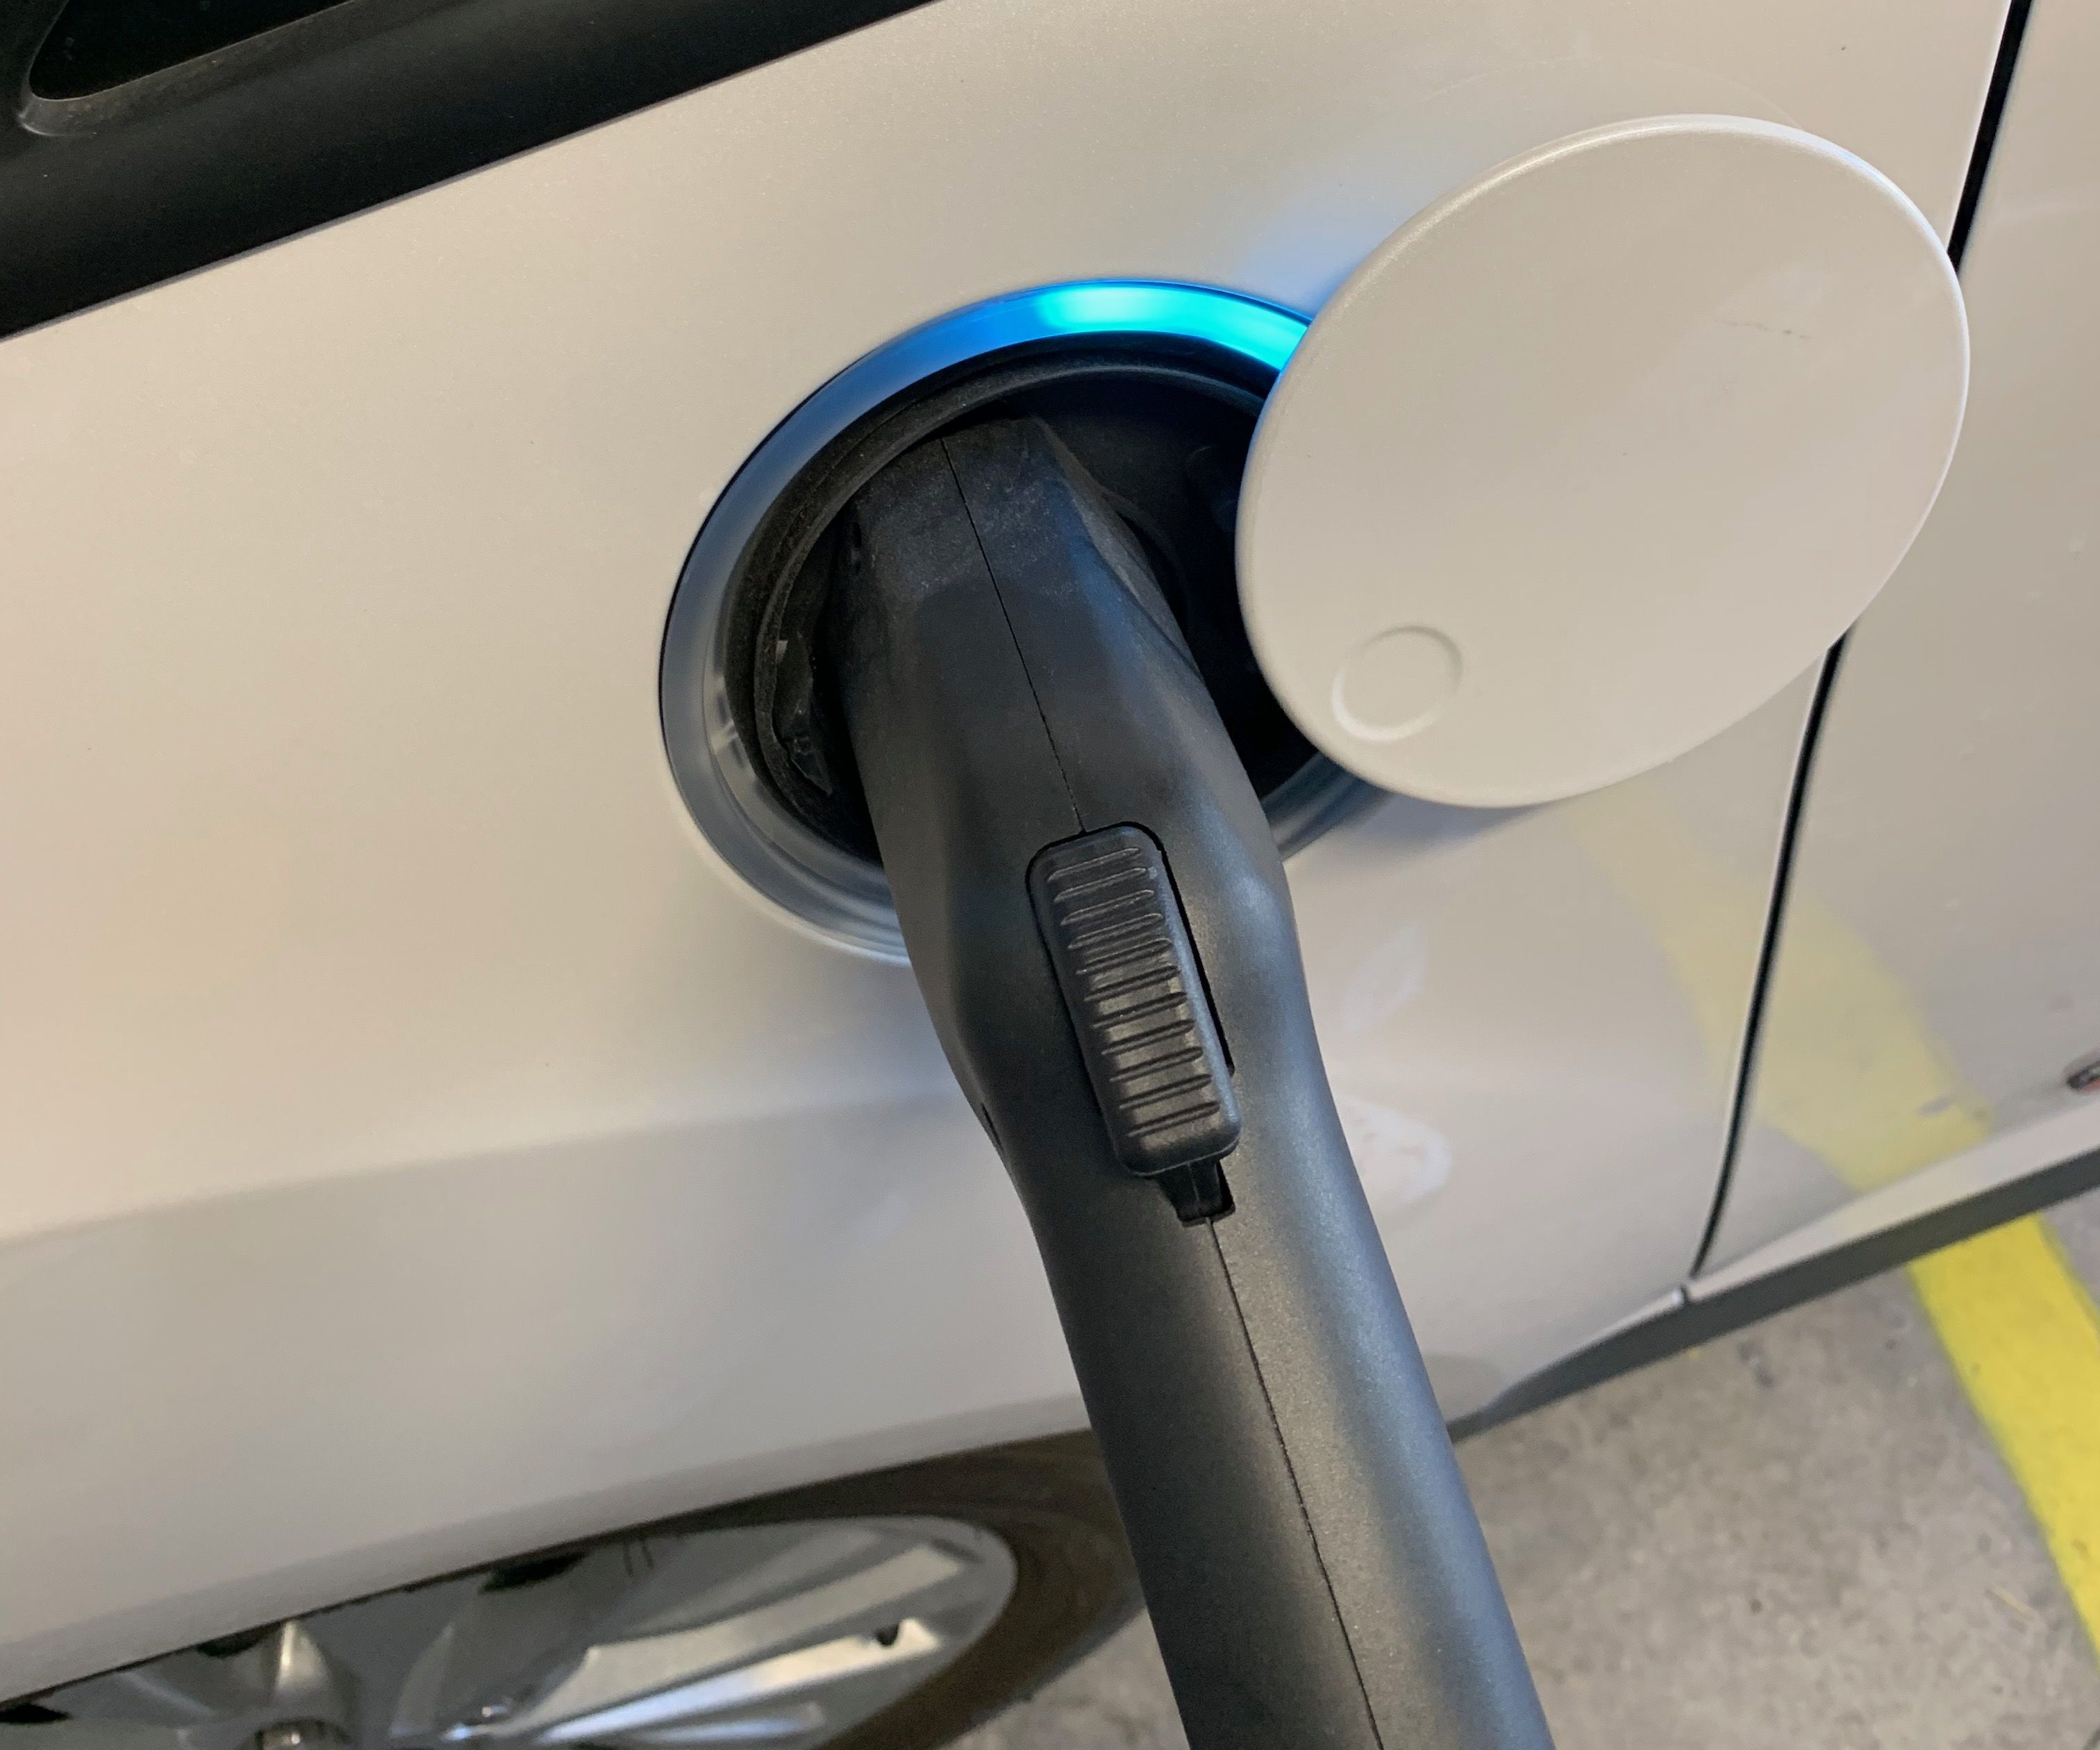 Dock for EV Charging Station - a 5 Minute Instructable